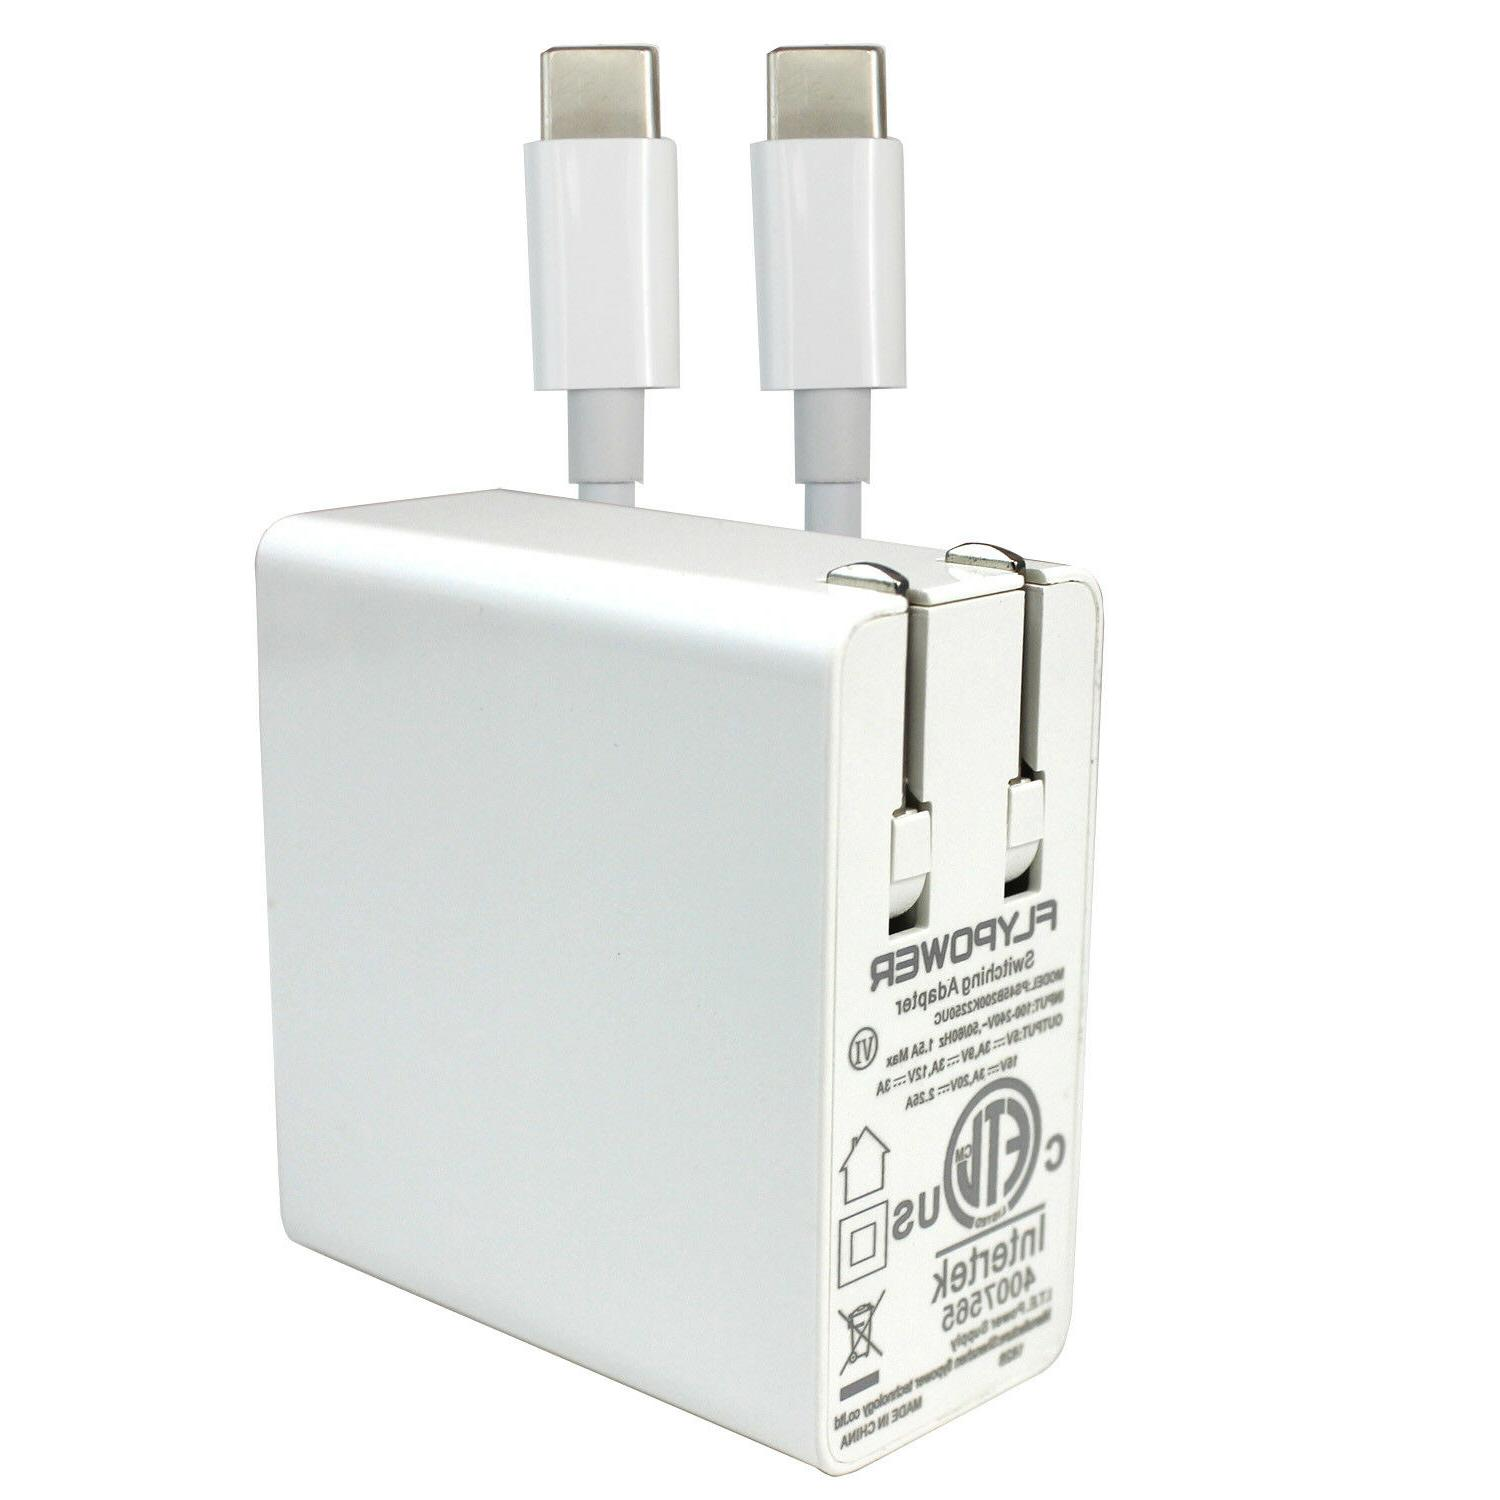 45w wall charger for macbook pro air